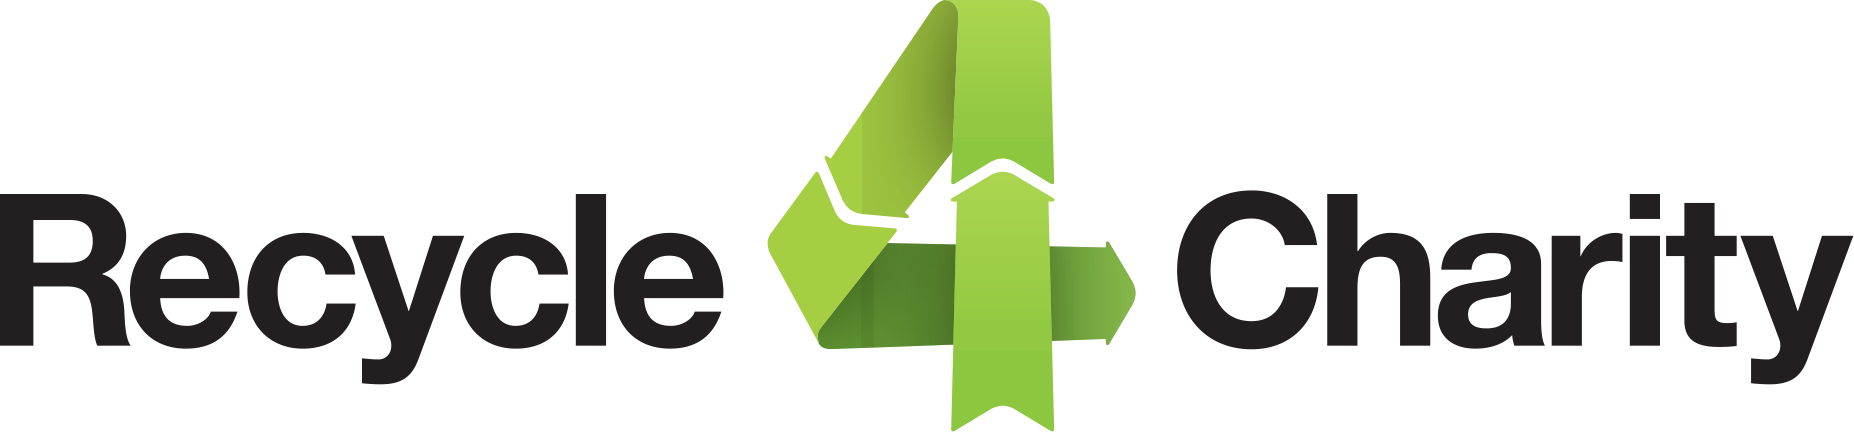 Recycle your ink cartridges logo